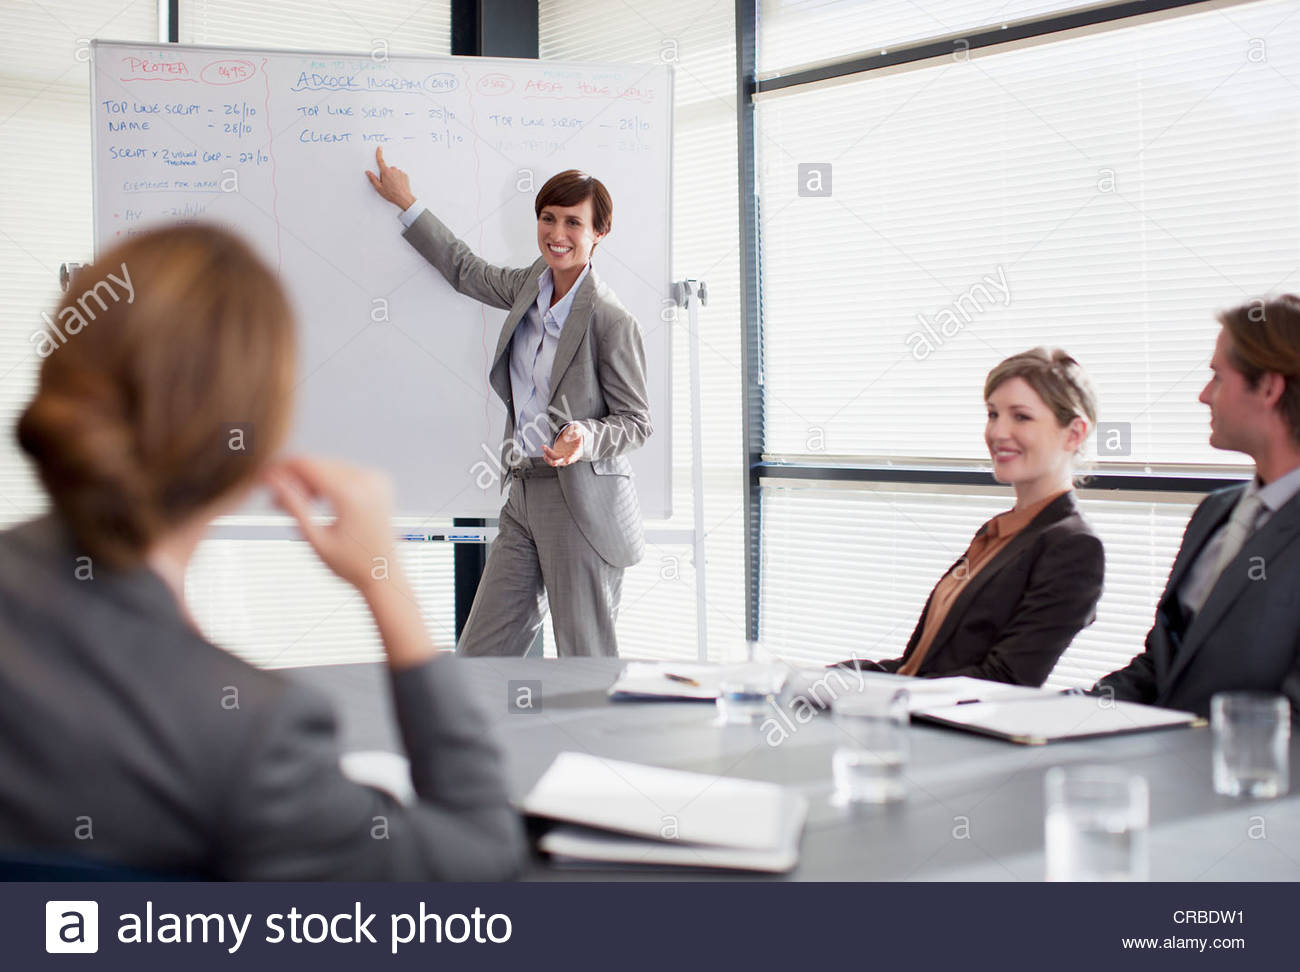 Businesswoman at whiteboard presenting to co-workers - Stock Image